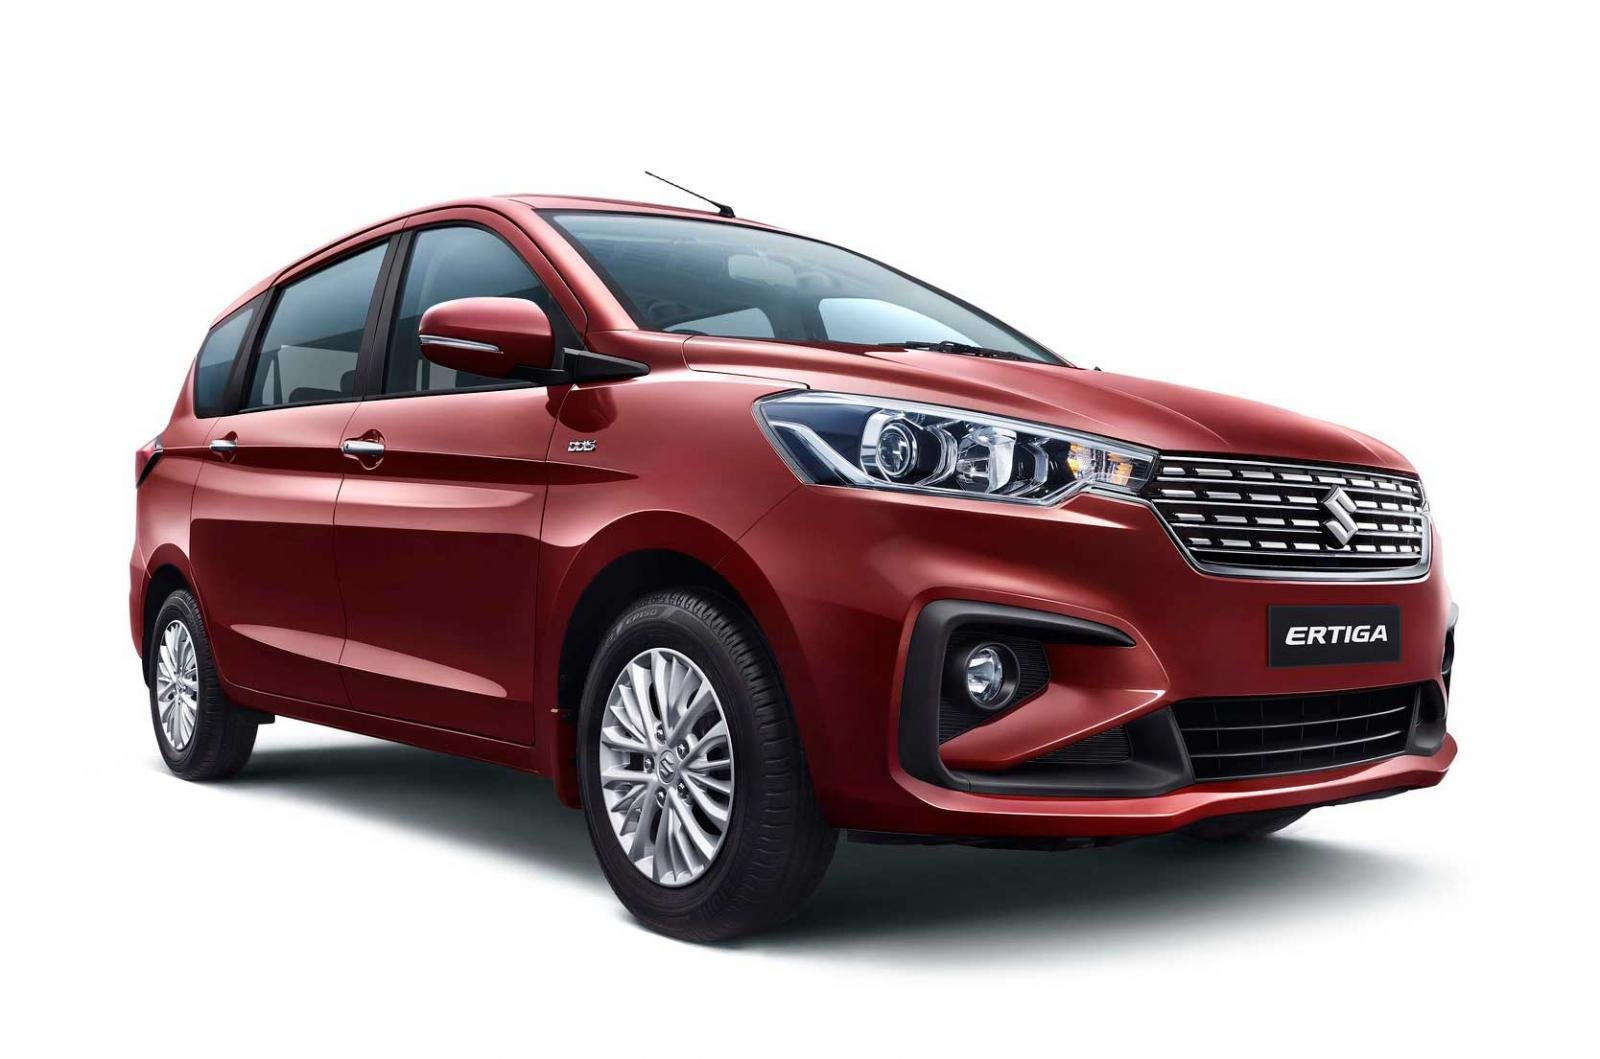 Maruti's Updated BS-VI 1.5-Litre Diesel Engine Will Launch Soon With Ciaz And Ertiga